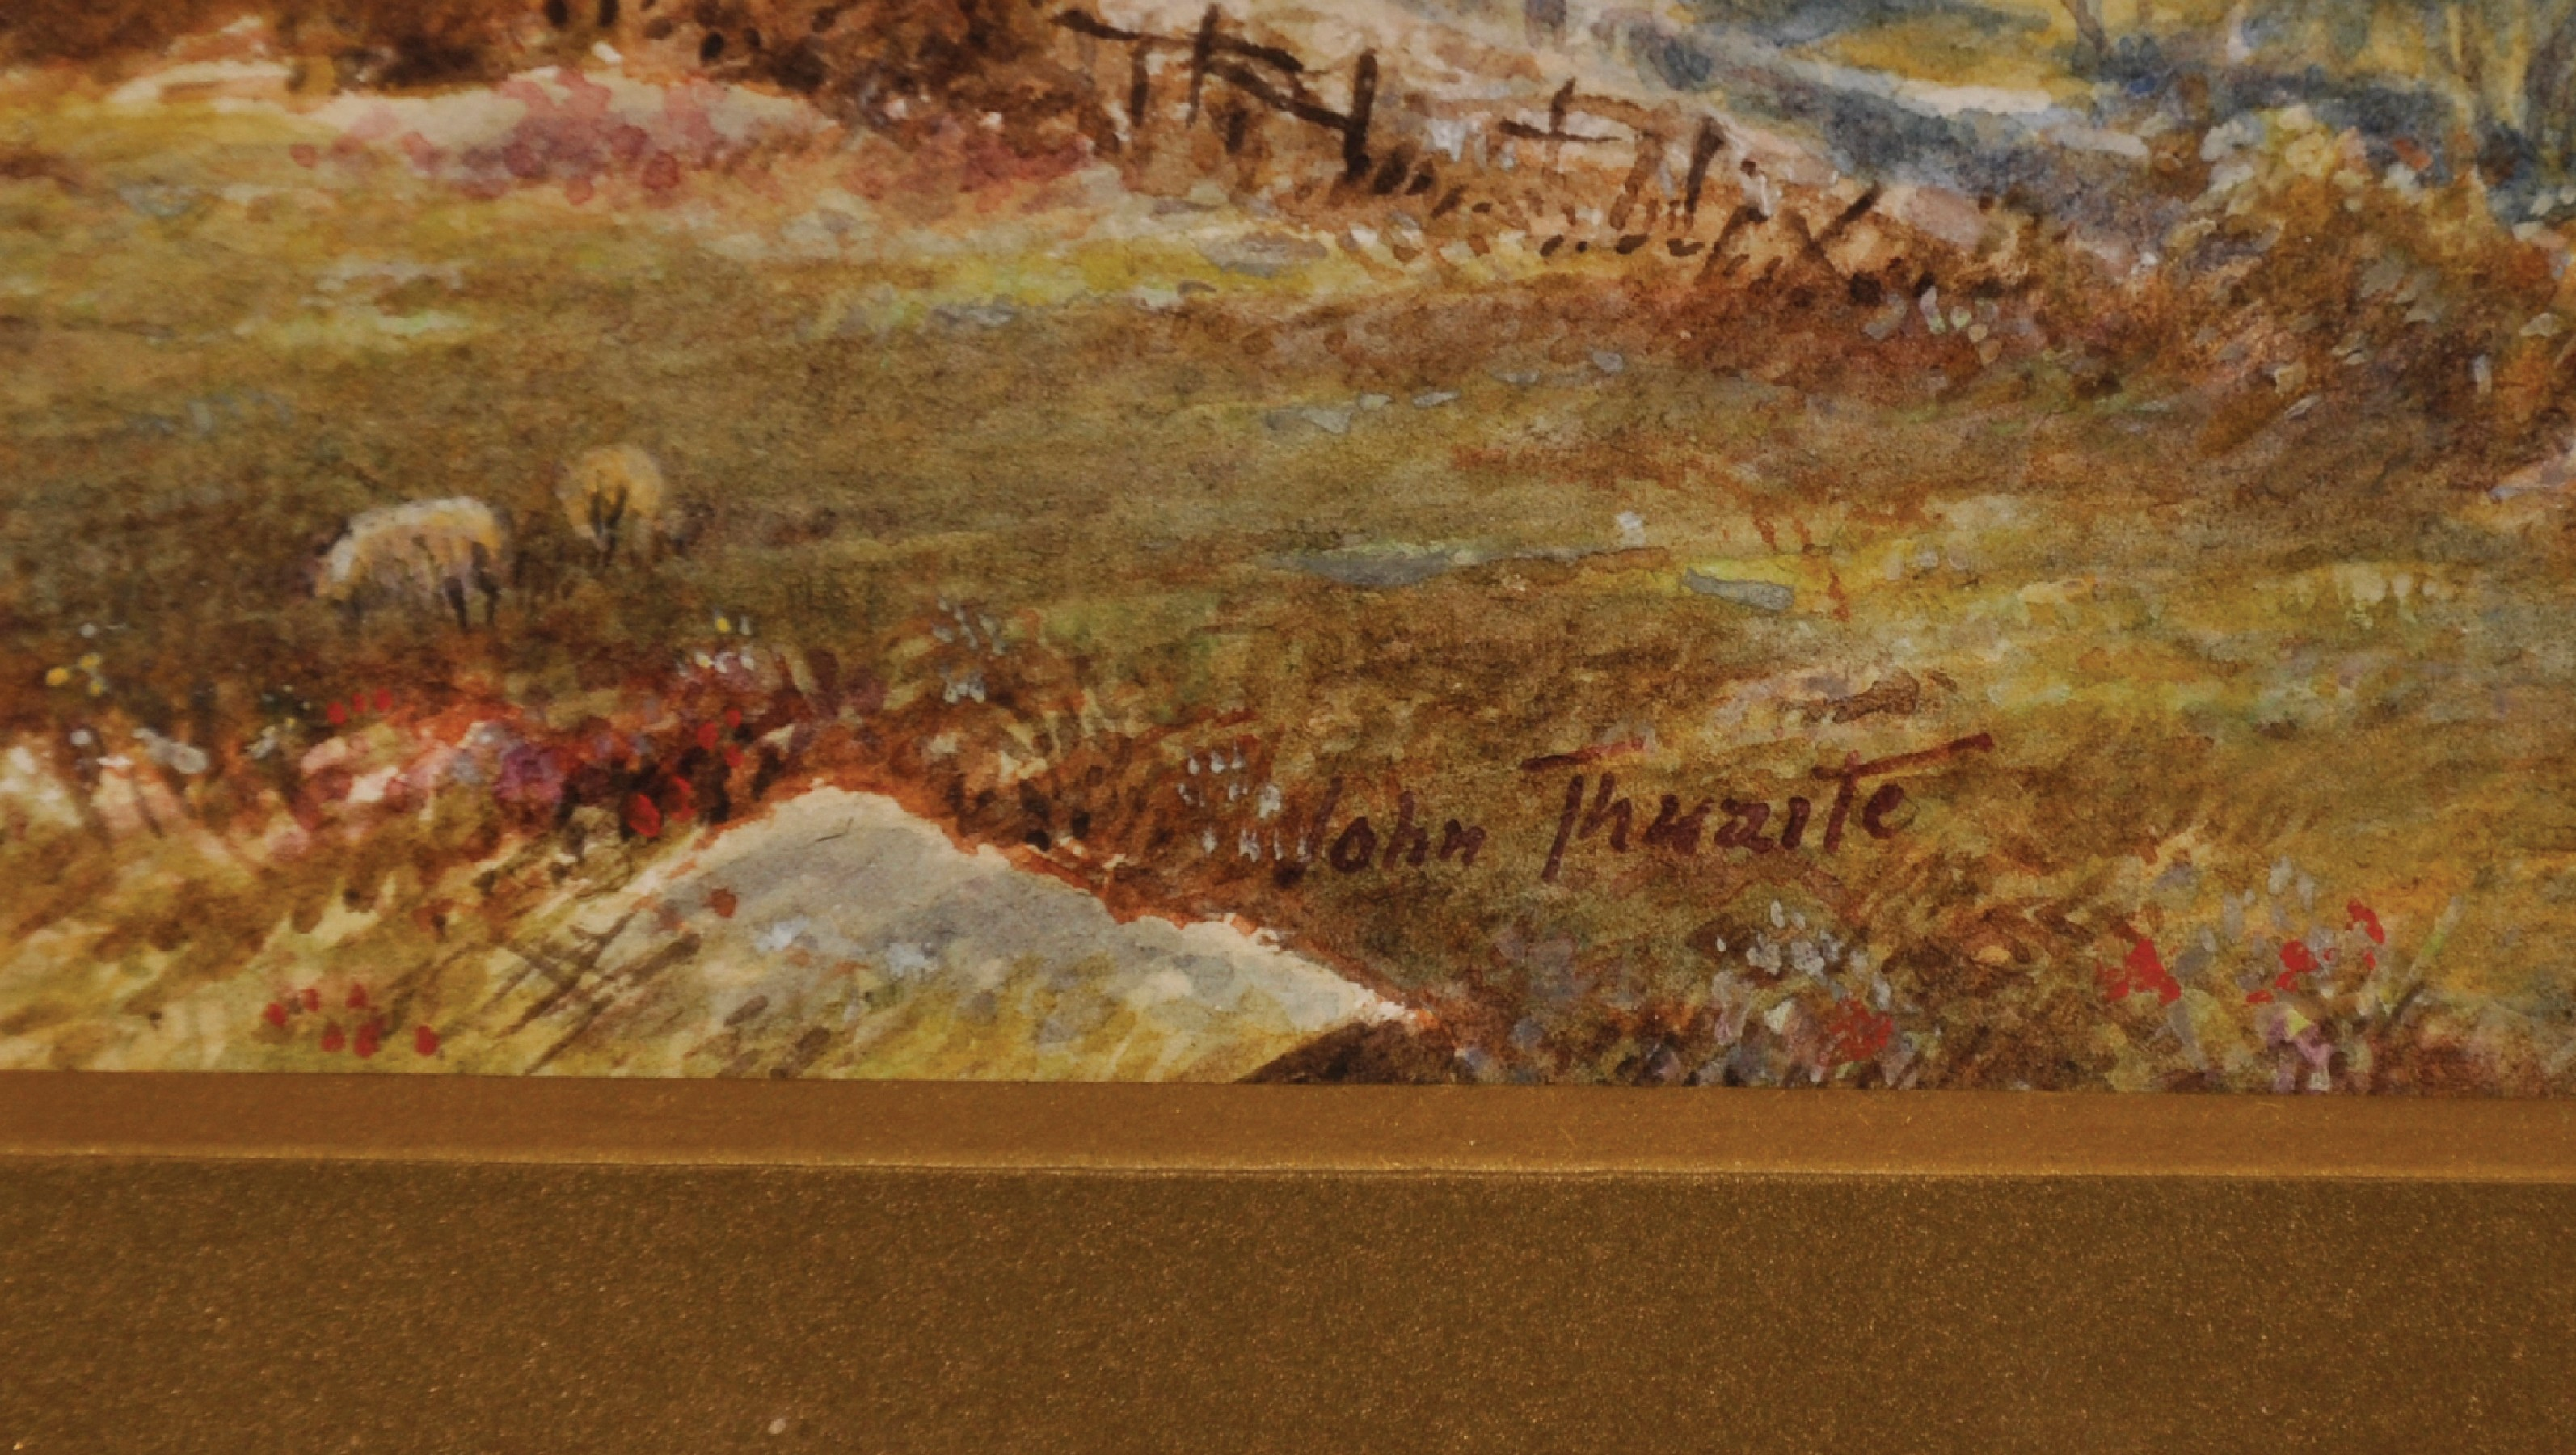 """John Thwaite (19th - 20th Century) British. """"Head of Buttermere"""", Watercolour, Signed, and Inscribed - Image 3 of 5"""